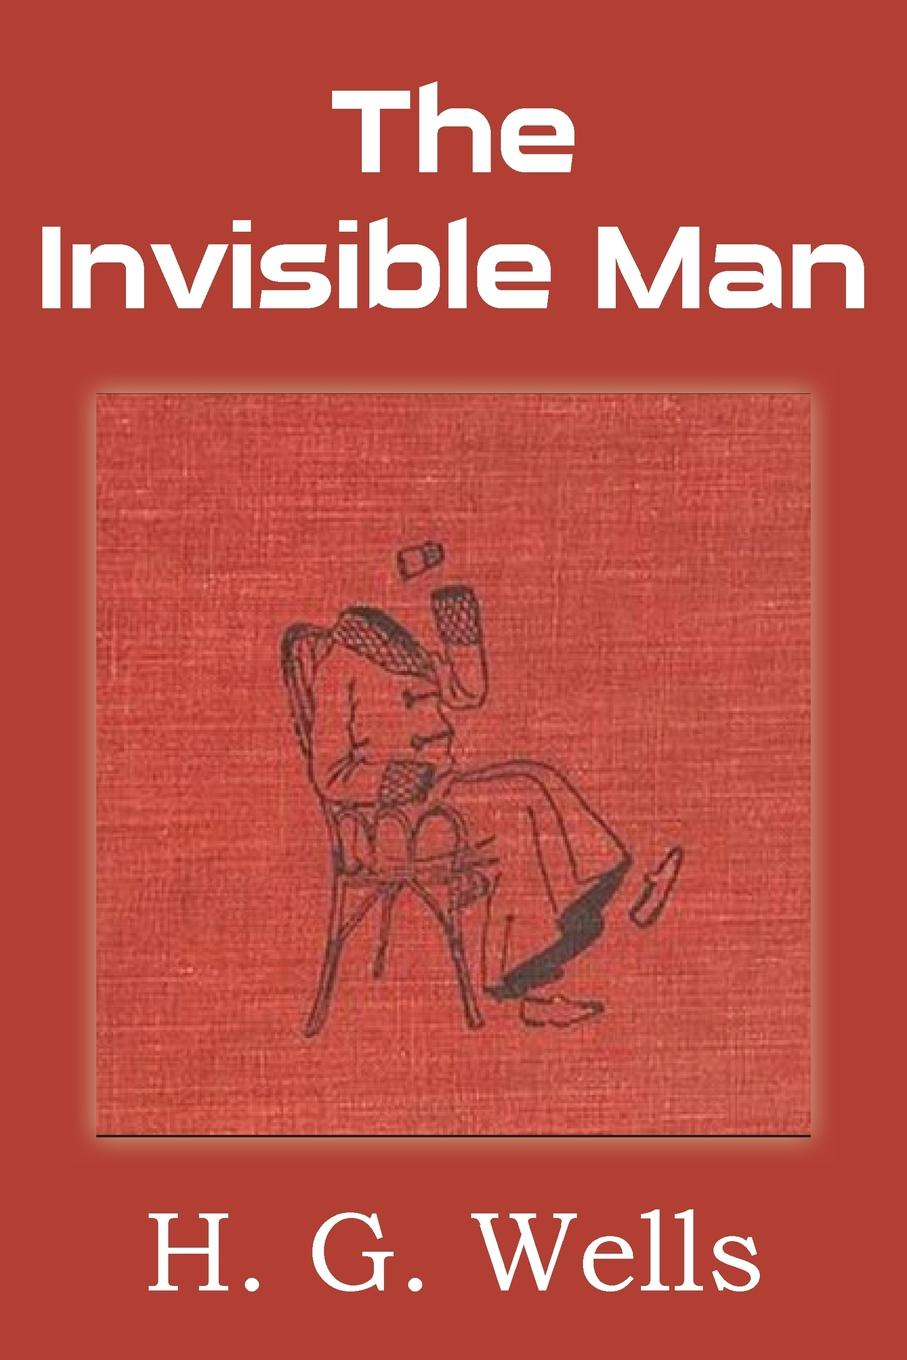 H. G. Wells The Invisible Man